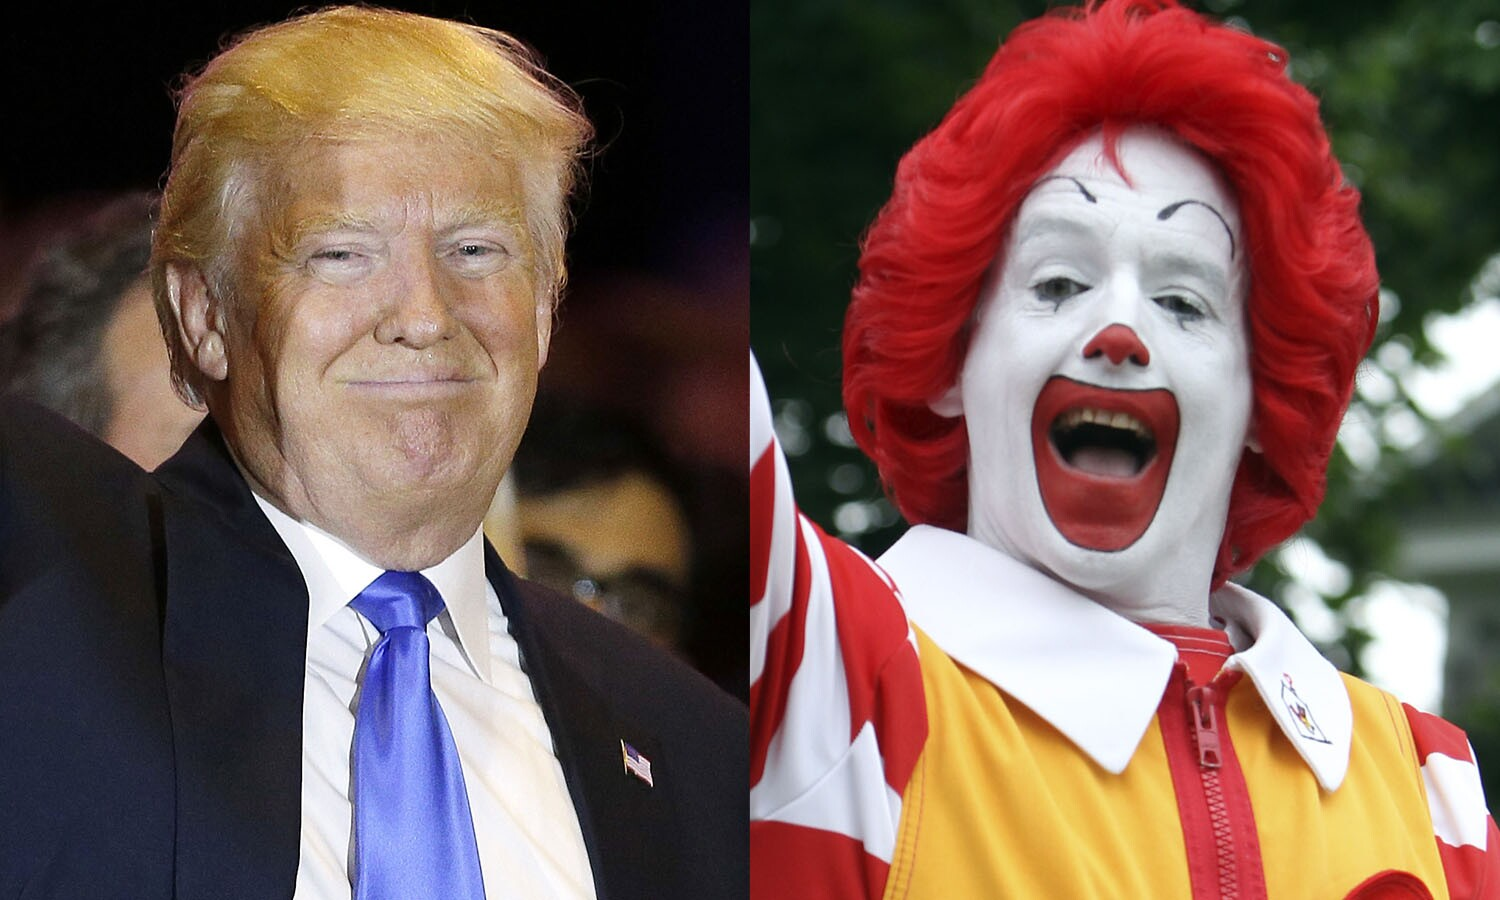 Image result for trump as ronald mcdonald pic